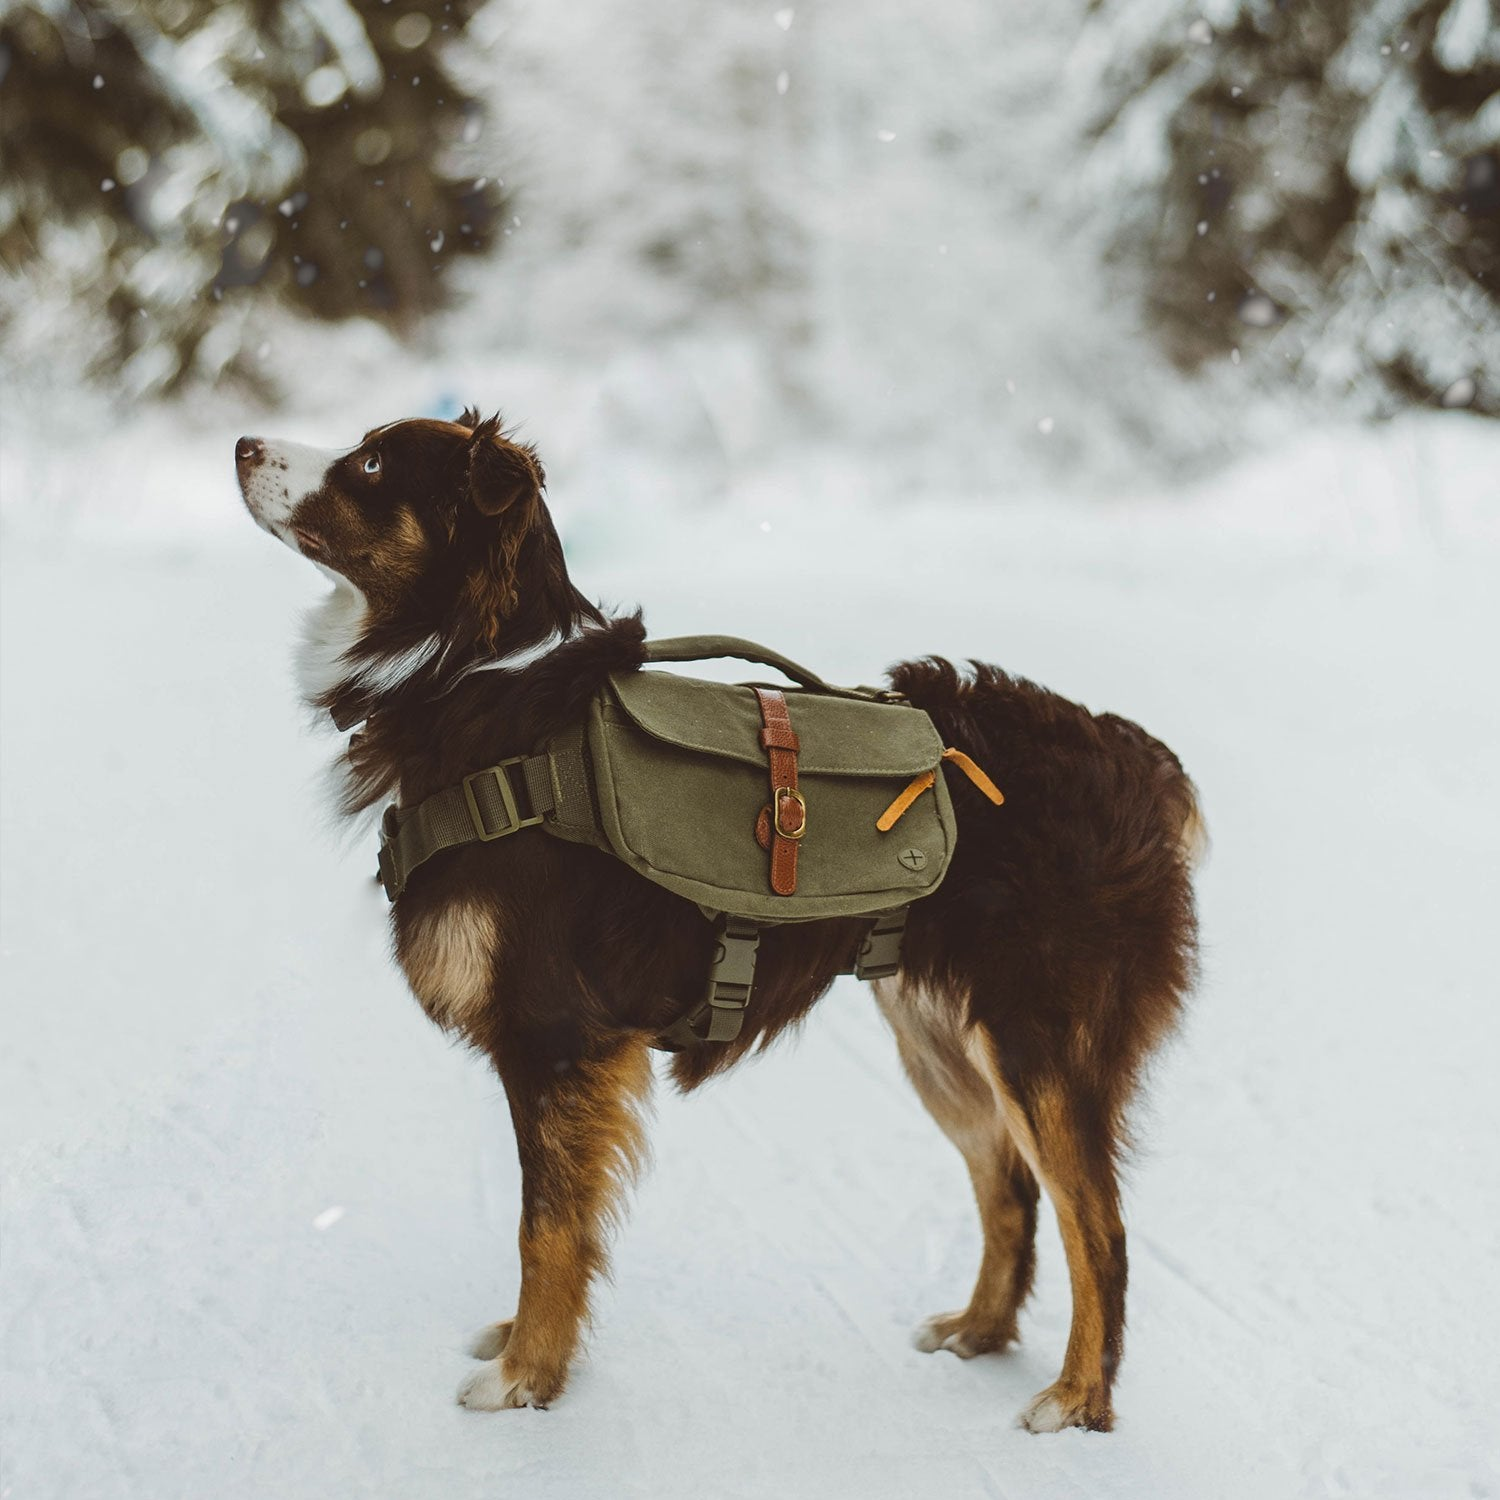 dog hiking in snow with backpack